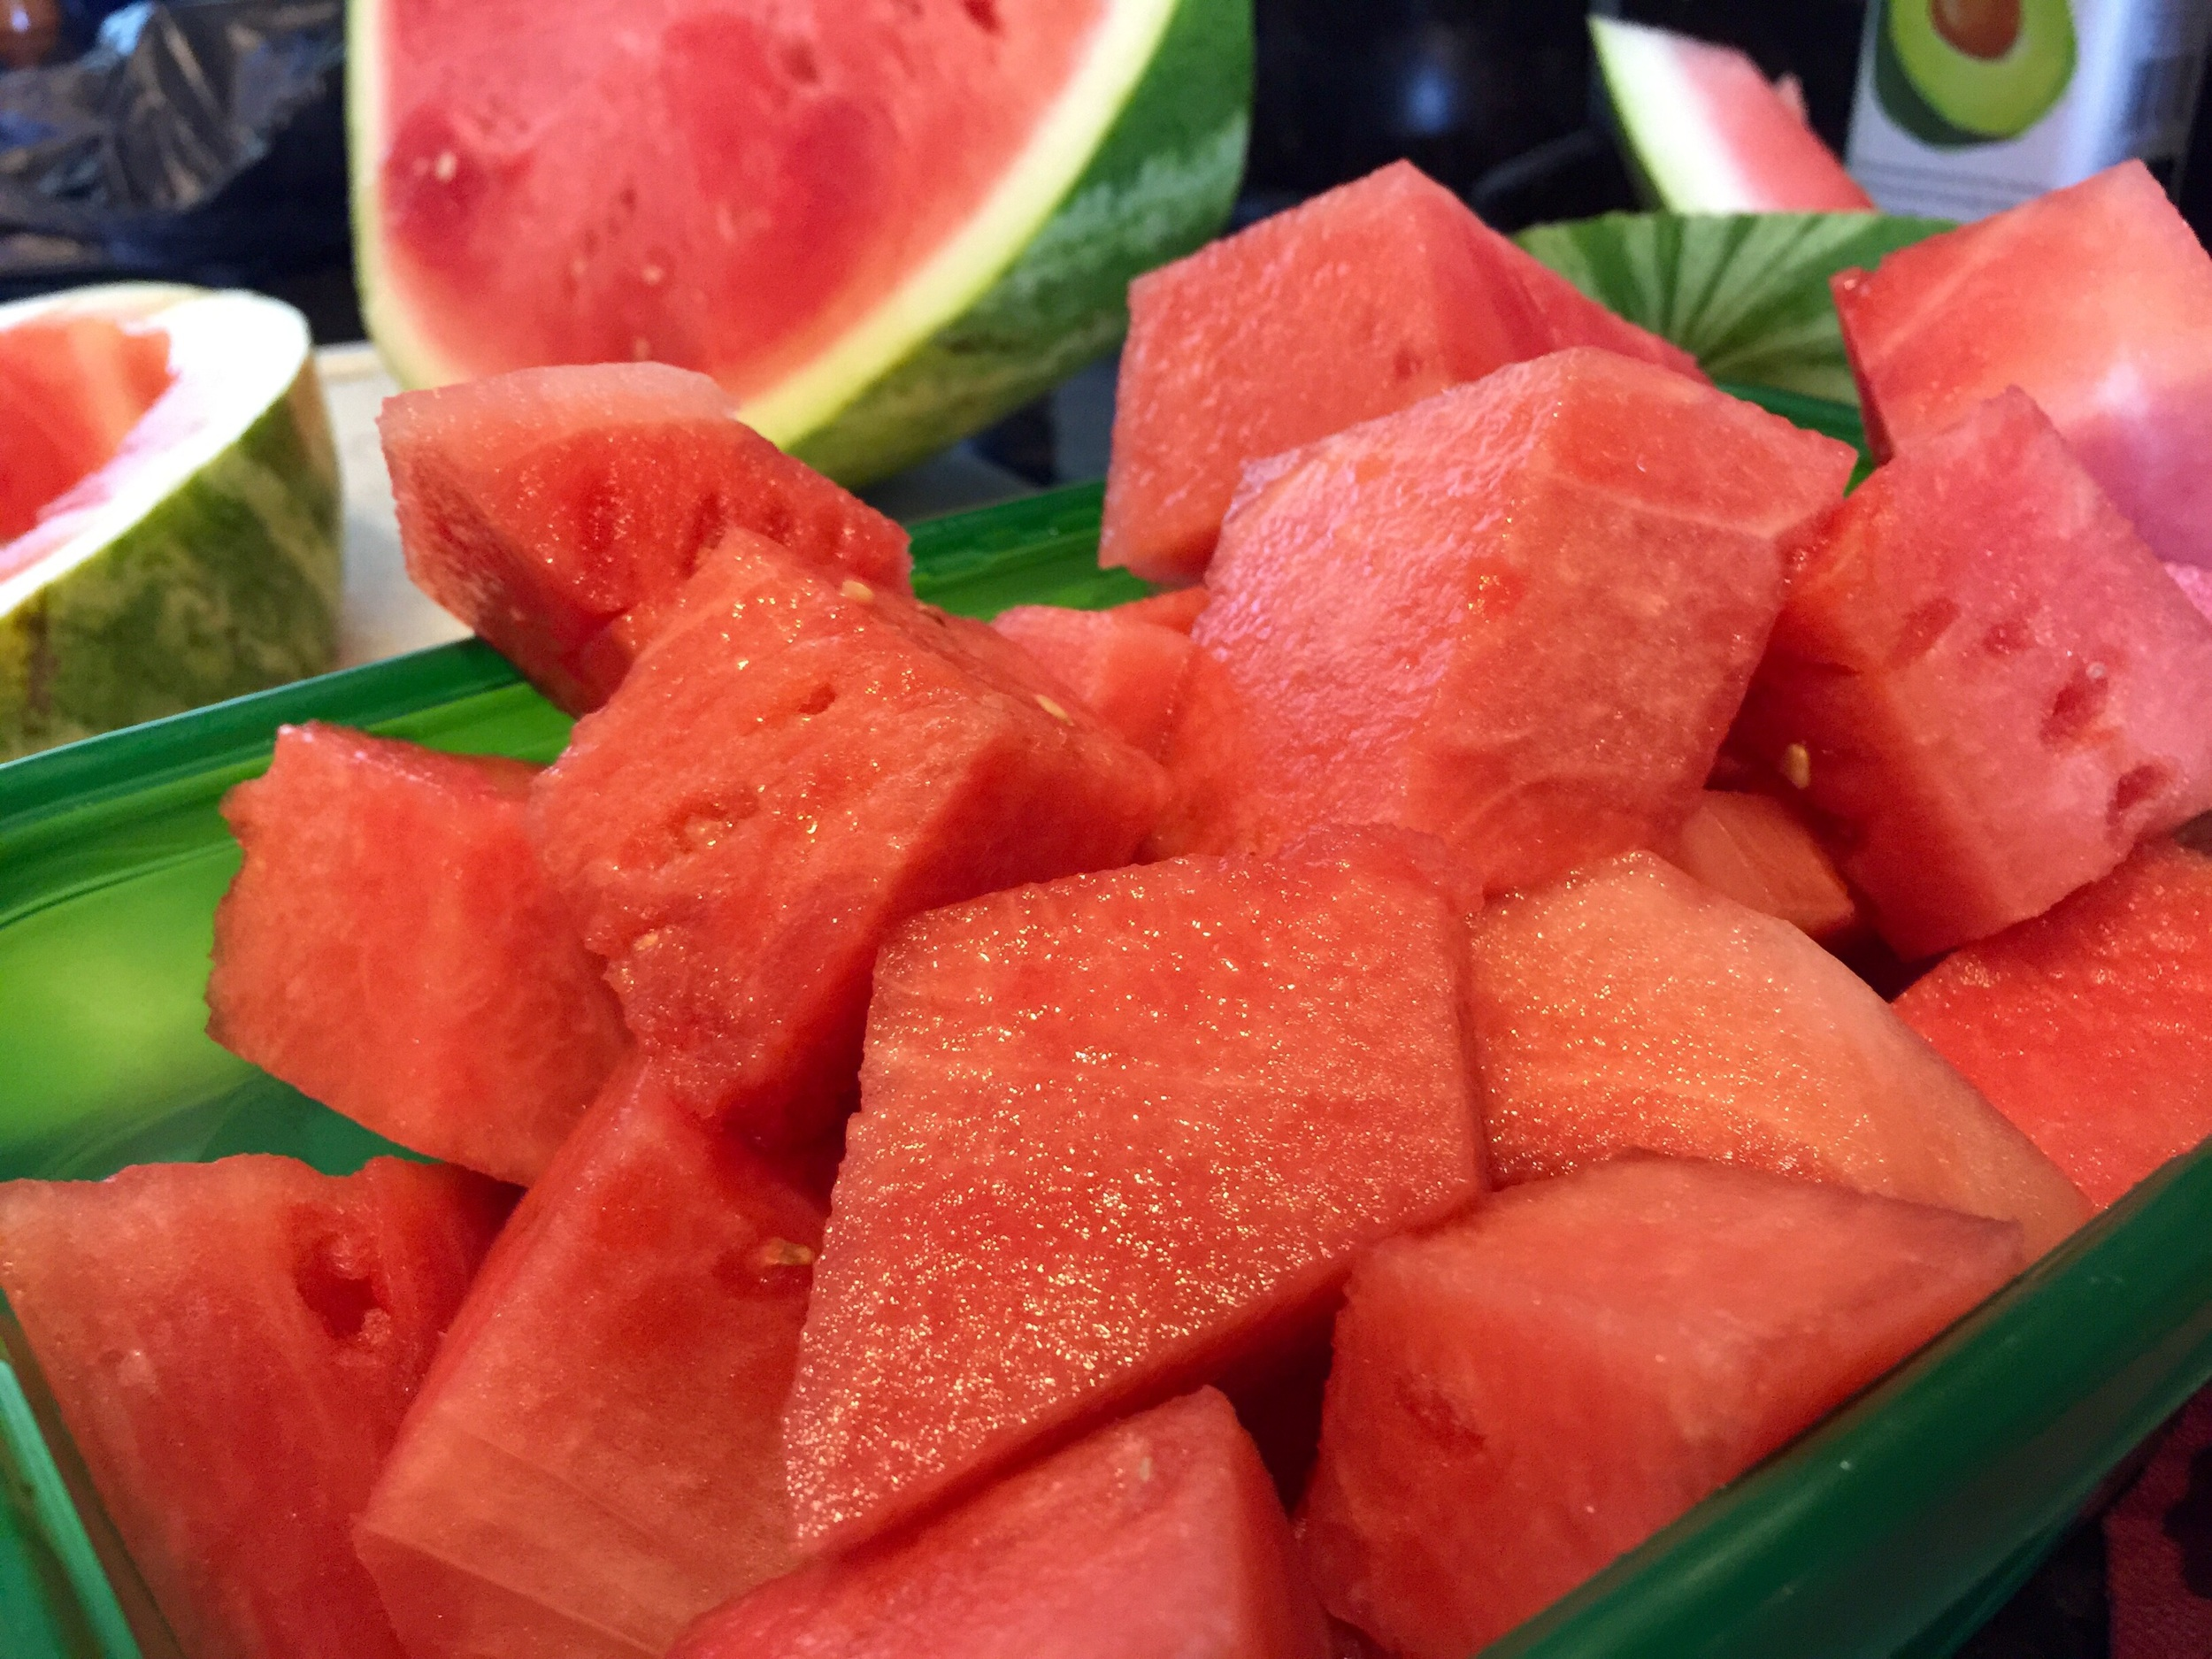 A whole watermelon is a lot in my house so after filling the ice trays I had a few pieces leftover to enjoy later.